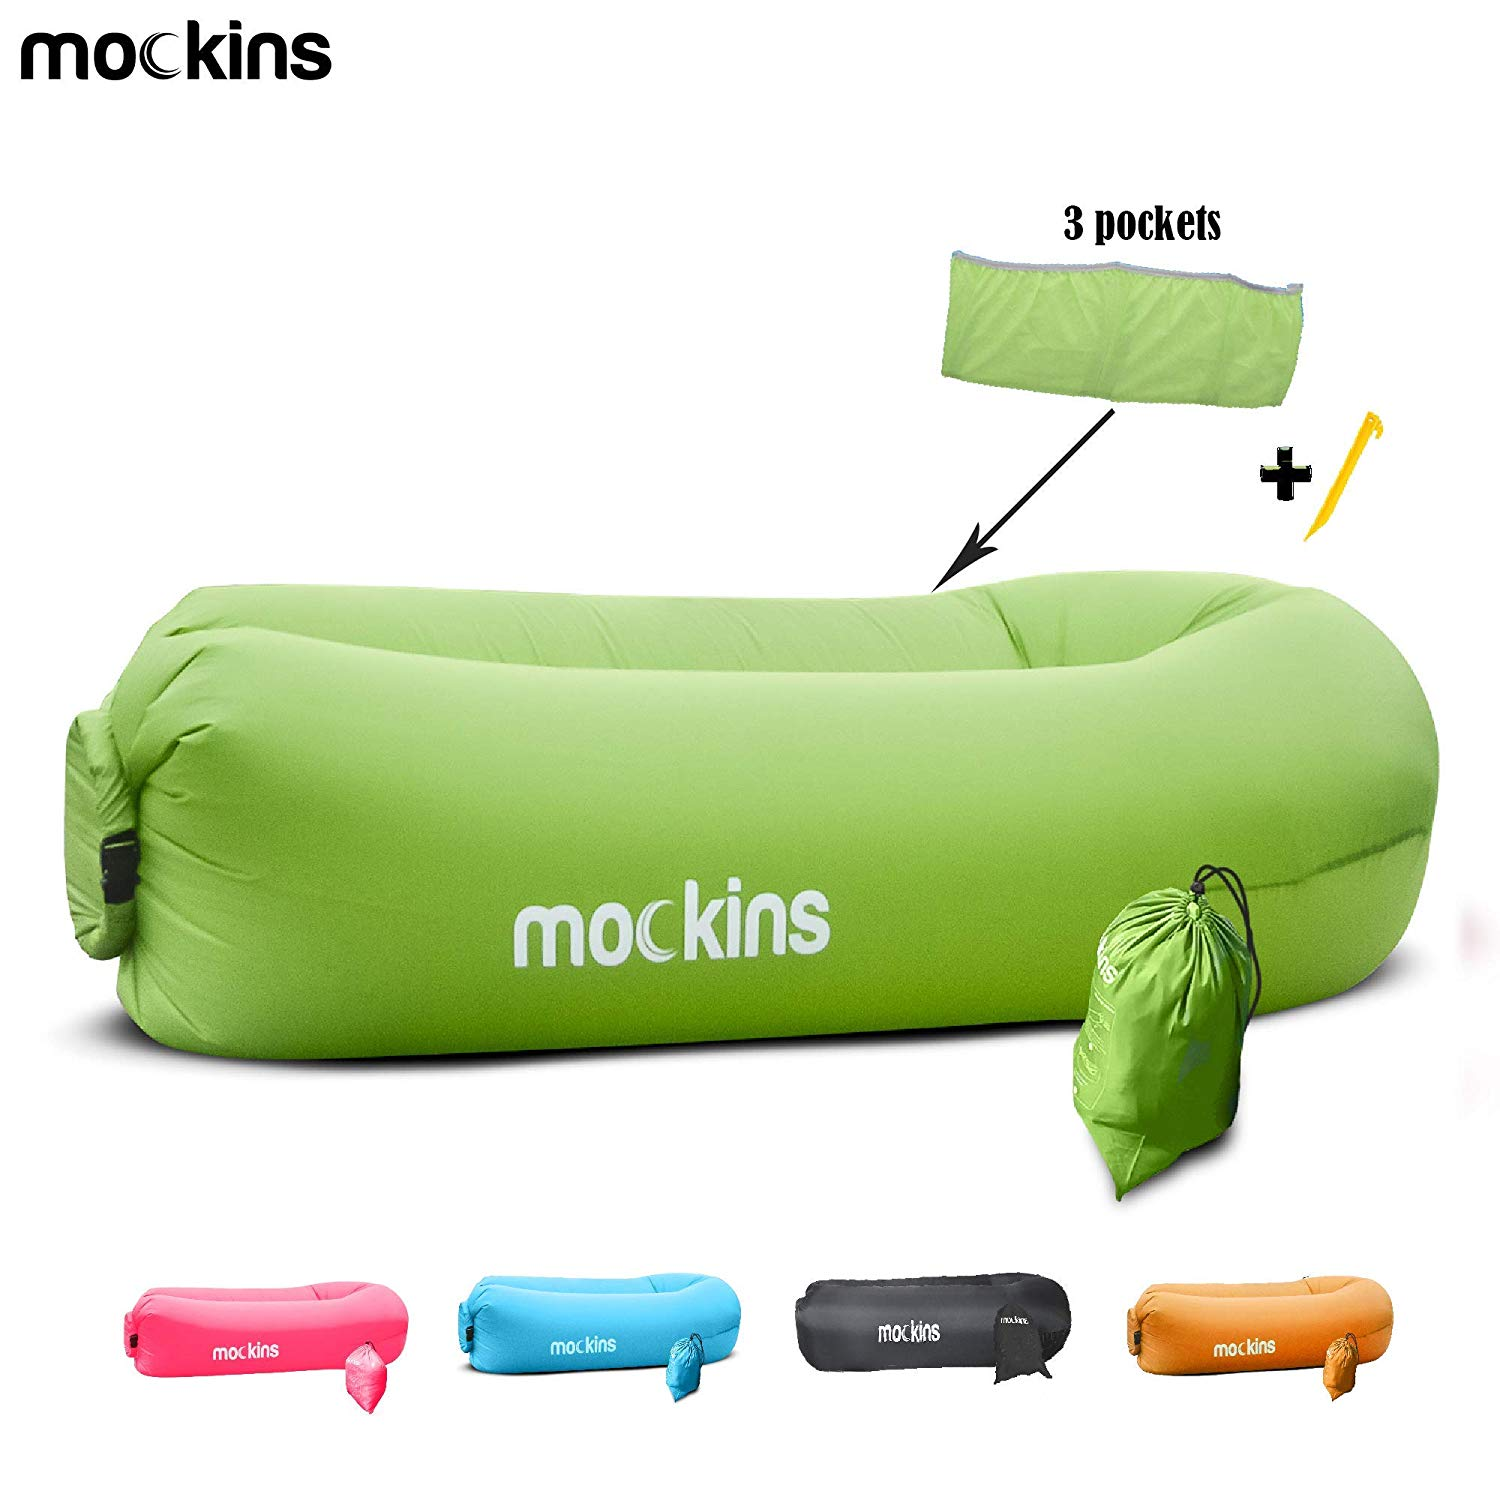 Mockins Green Inflatable Lounger